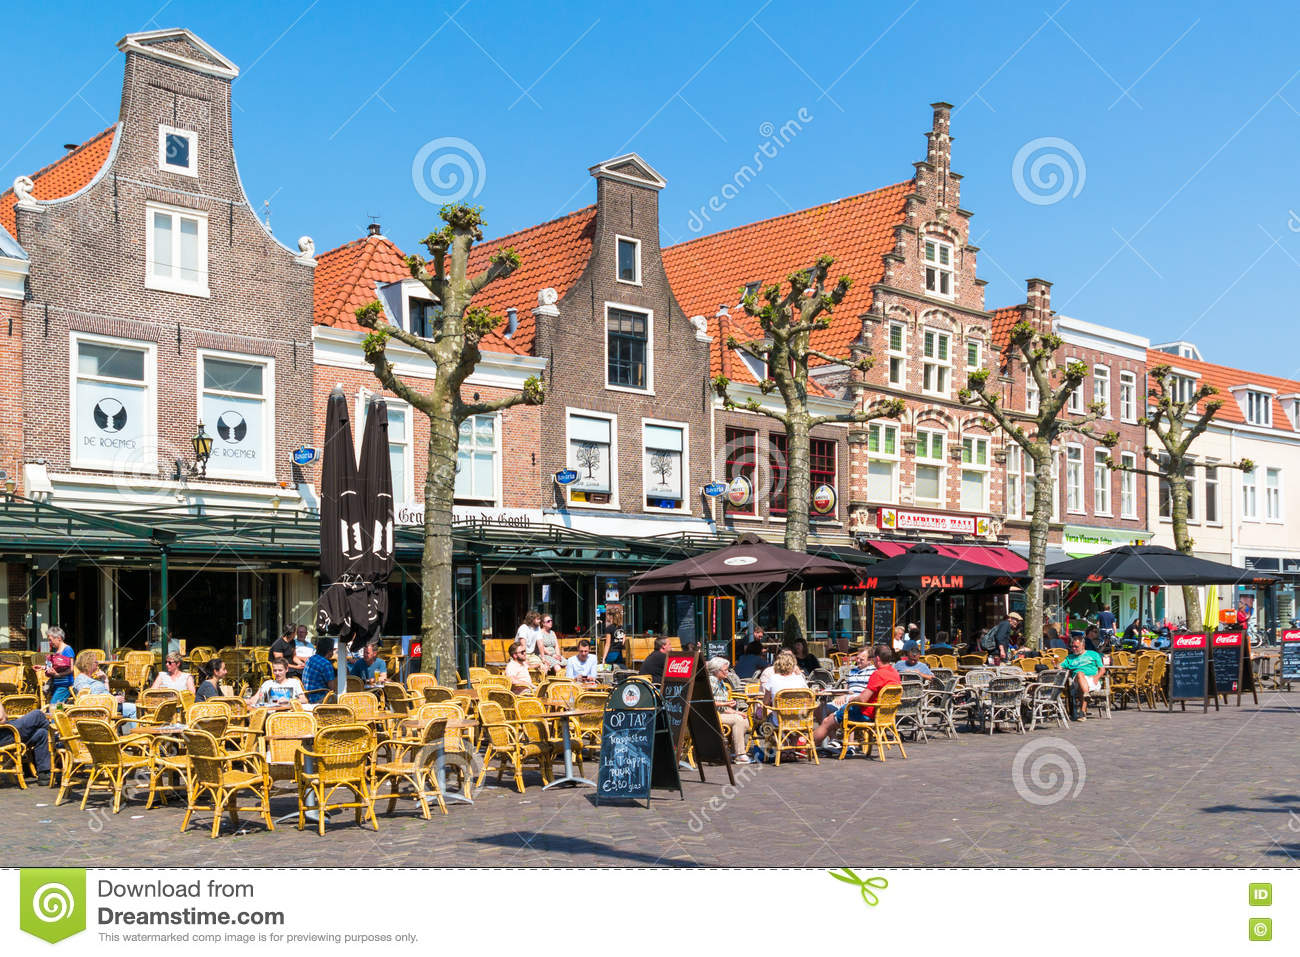 caf s de trottoir sur botermarkt haarlem pays bas photo ditorial image du centre d tendez. Black Bedroom Furniture Sets. Home Design Ideas